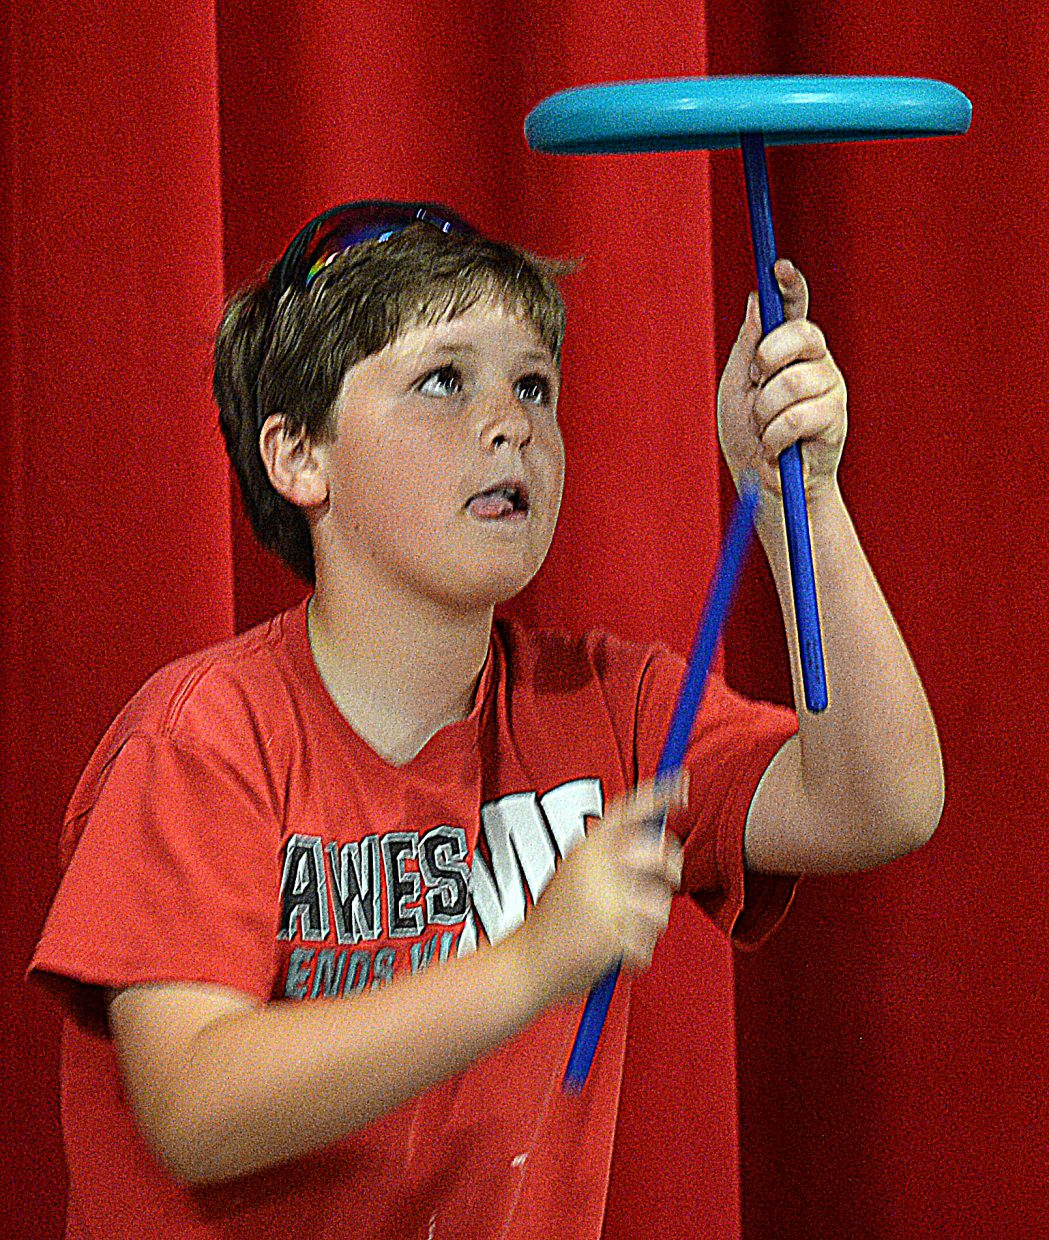 Aiden Murphy performs for fellow students at Strawberry Park Elementary School during Wednesday's talent show. The event is one of several this week as students and staff prepare for the summer break.